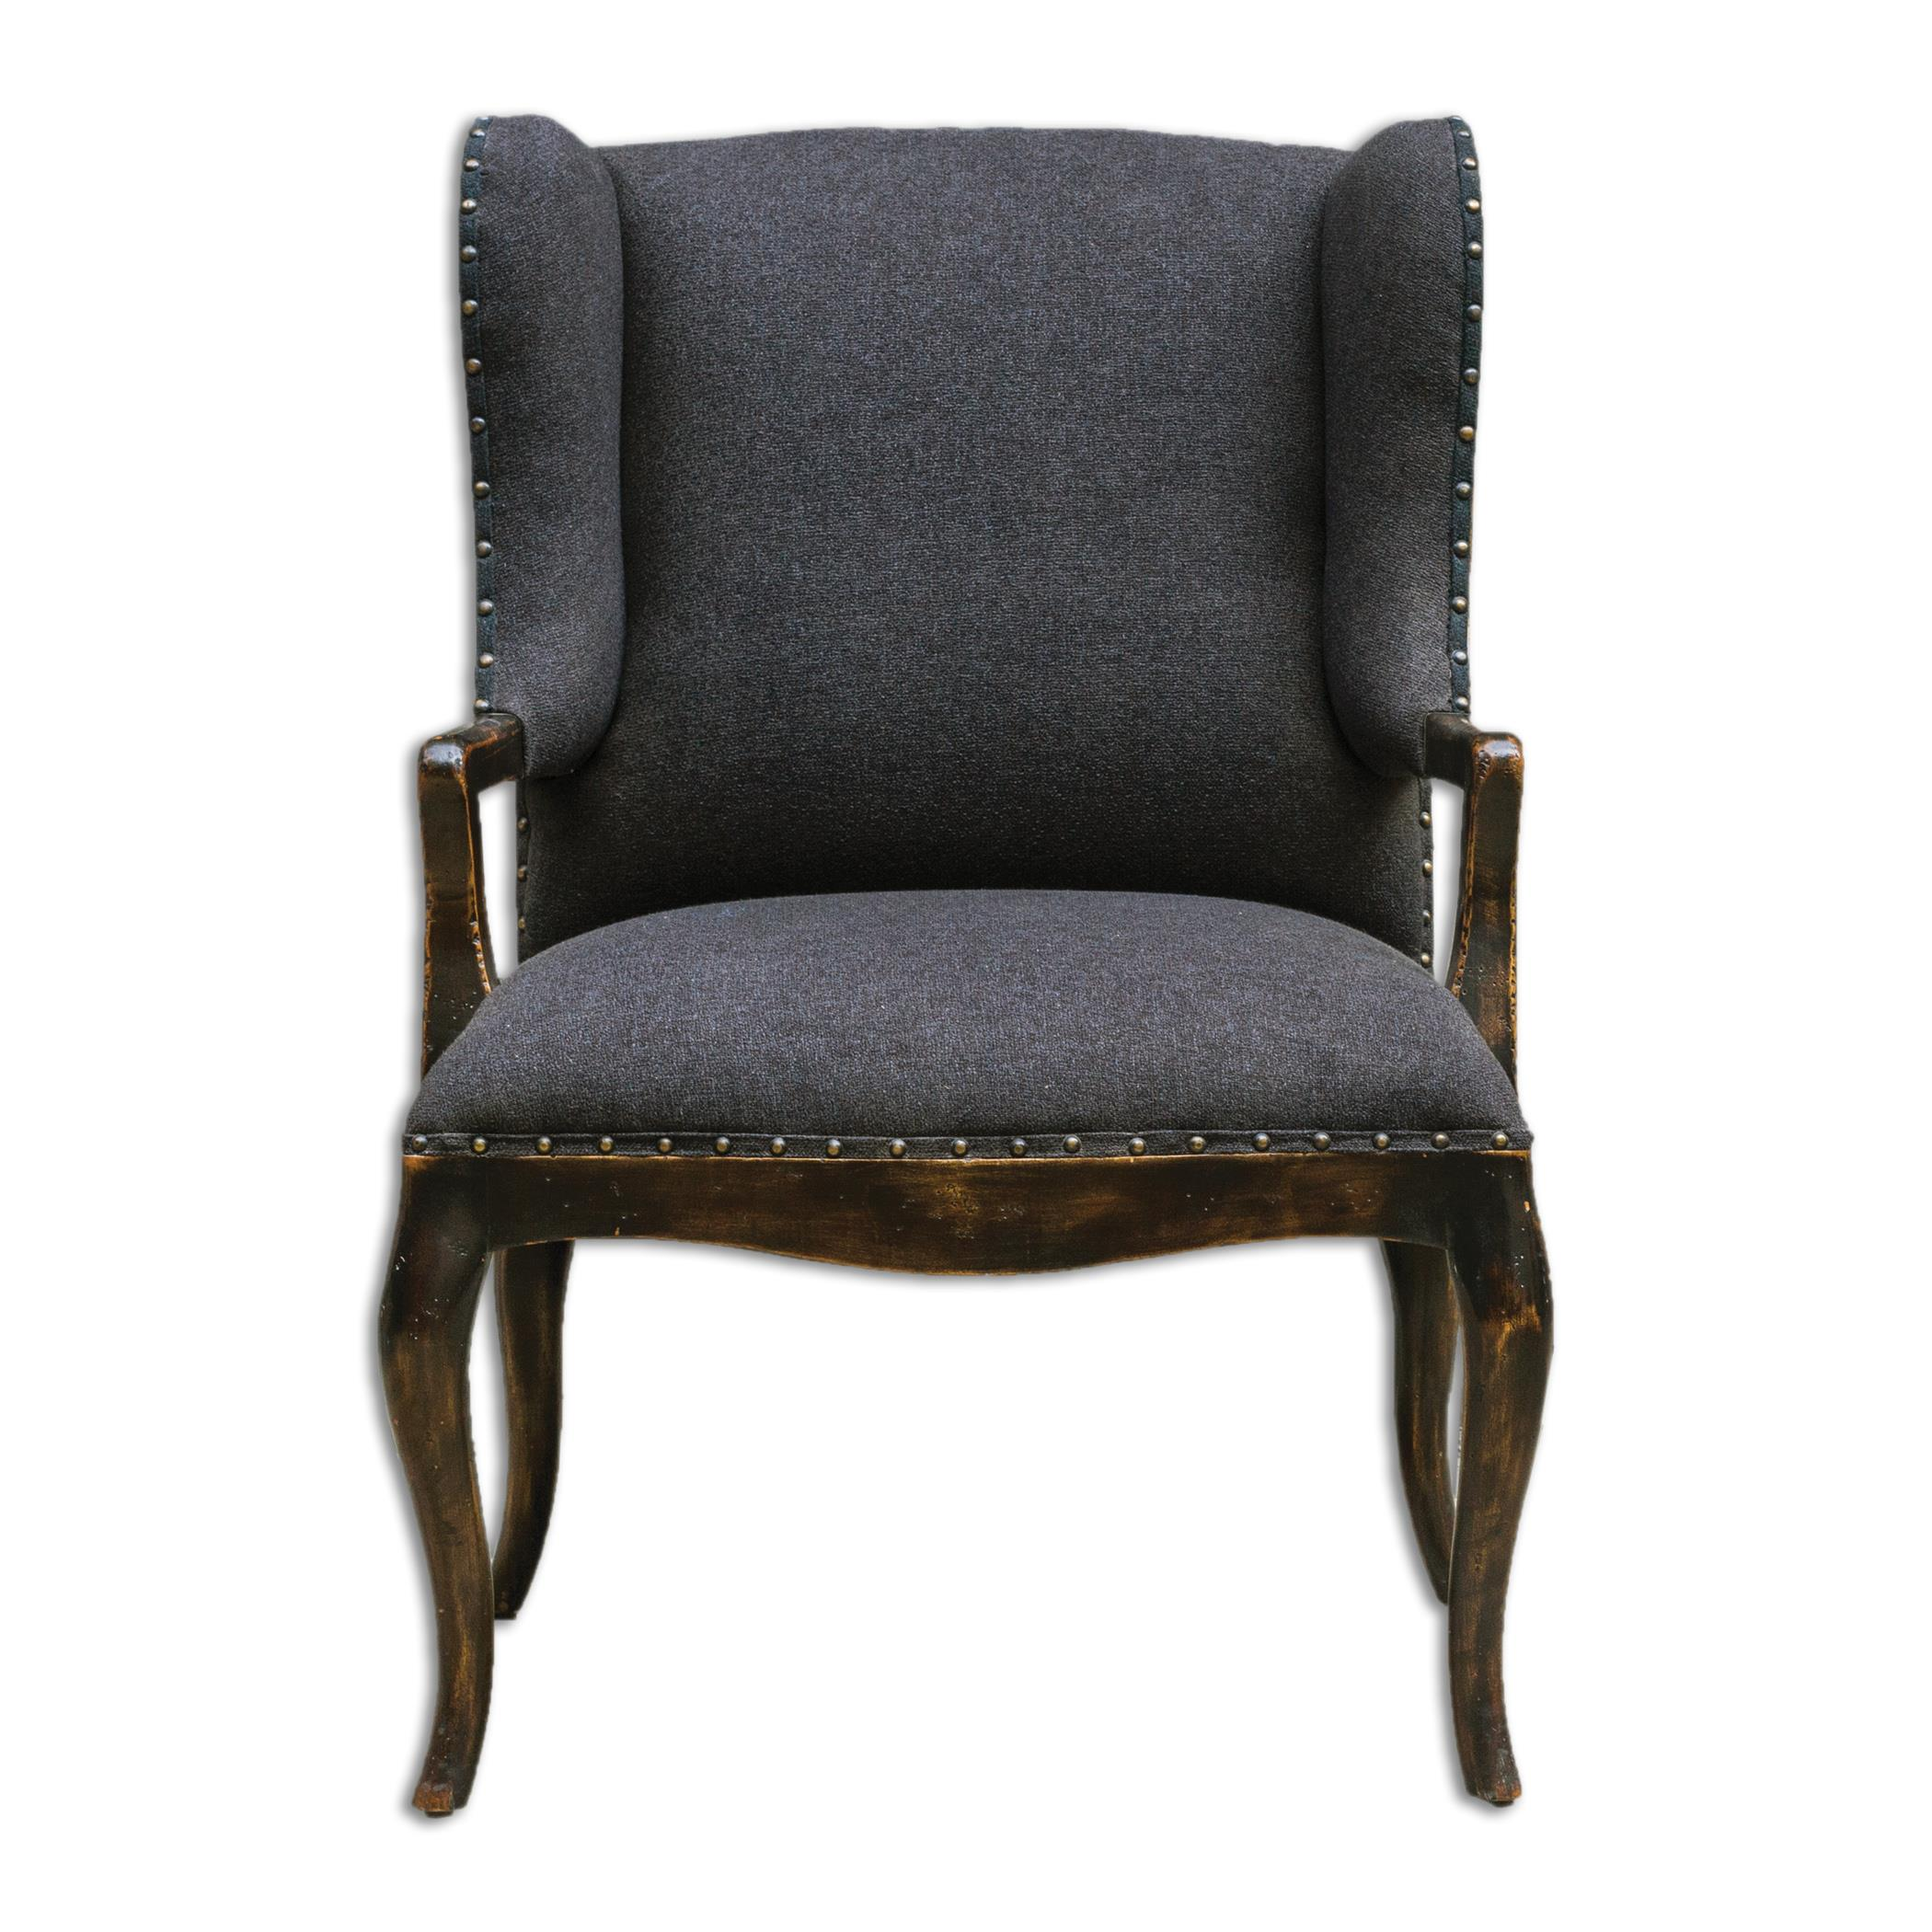 Uttermost Accent Furniture Chione Black Armchair - Item Number: 23631